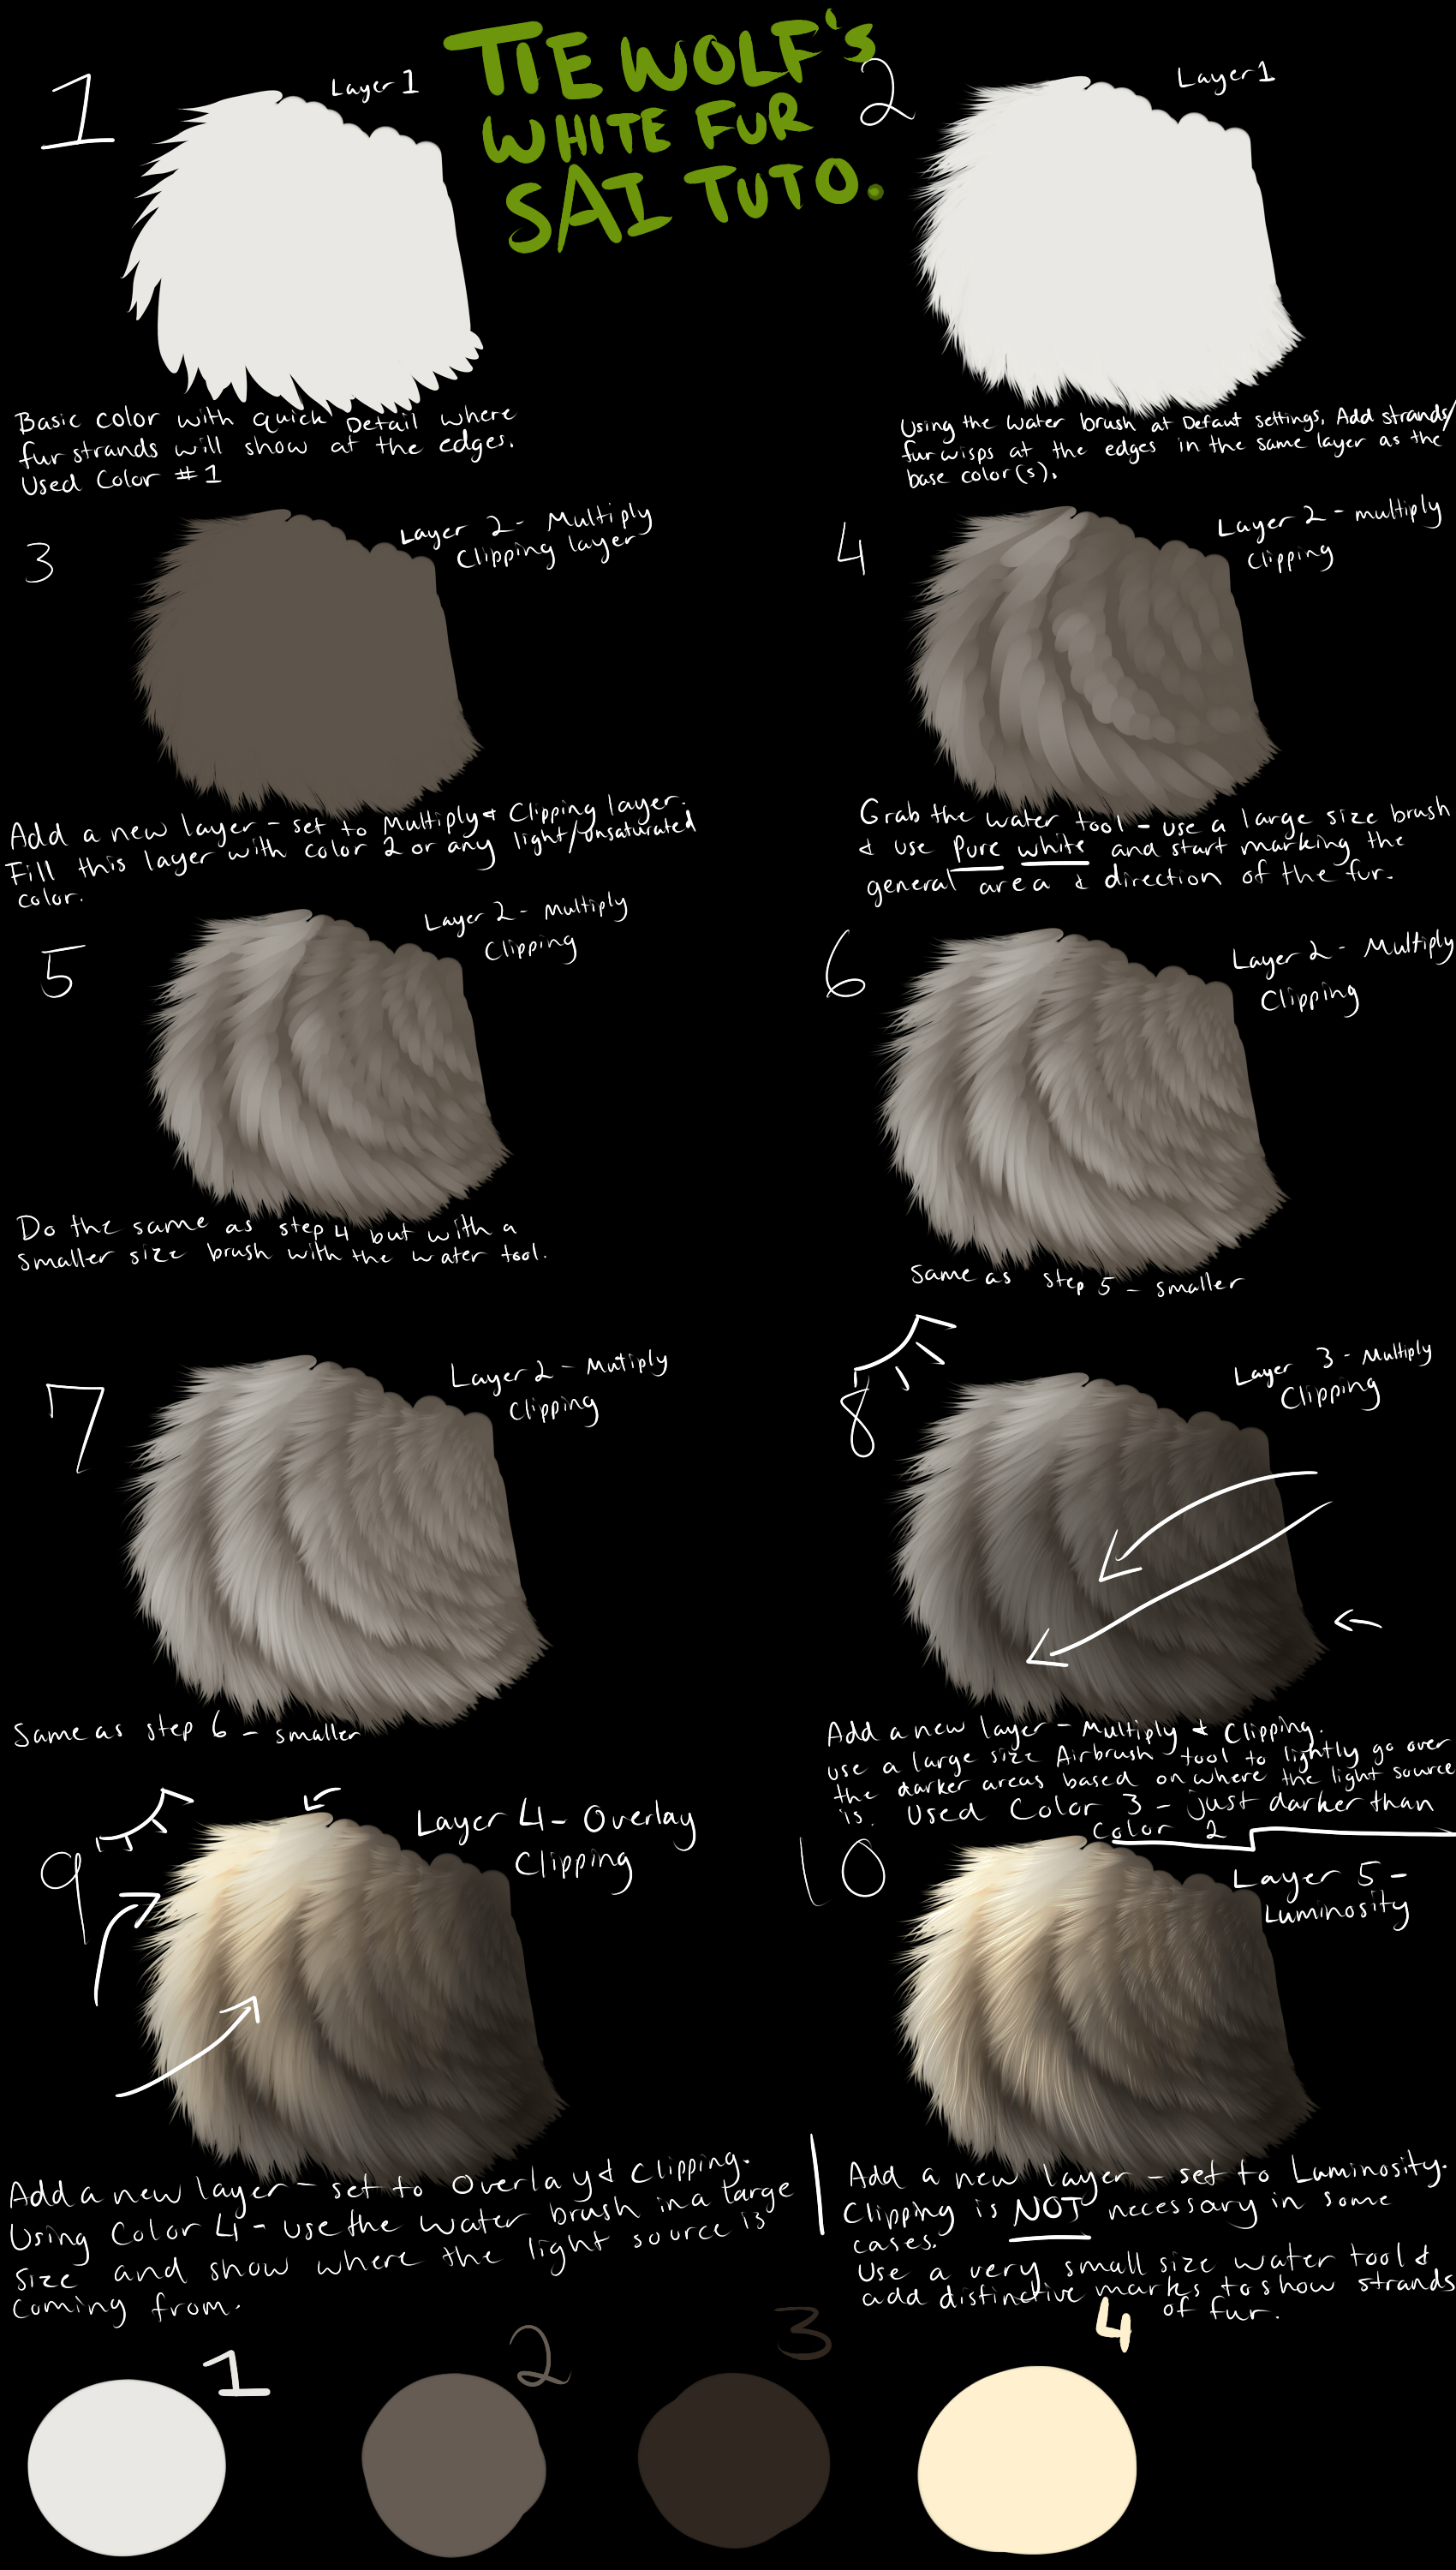 Fur Tutorial by ryky on DeviantArt